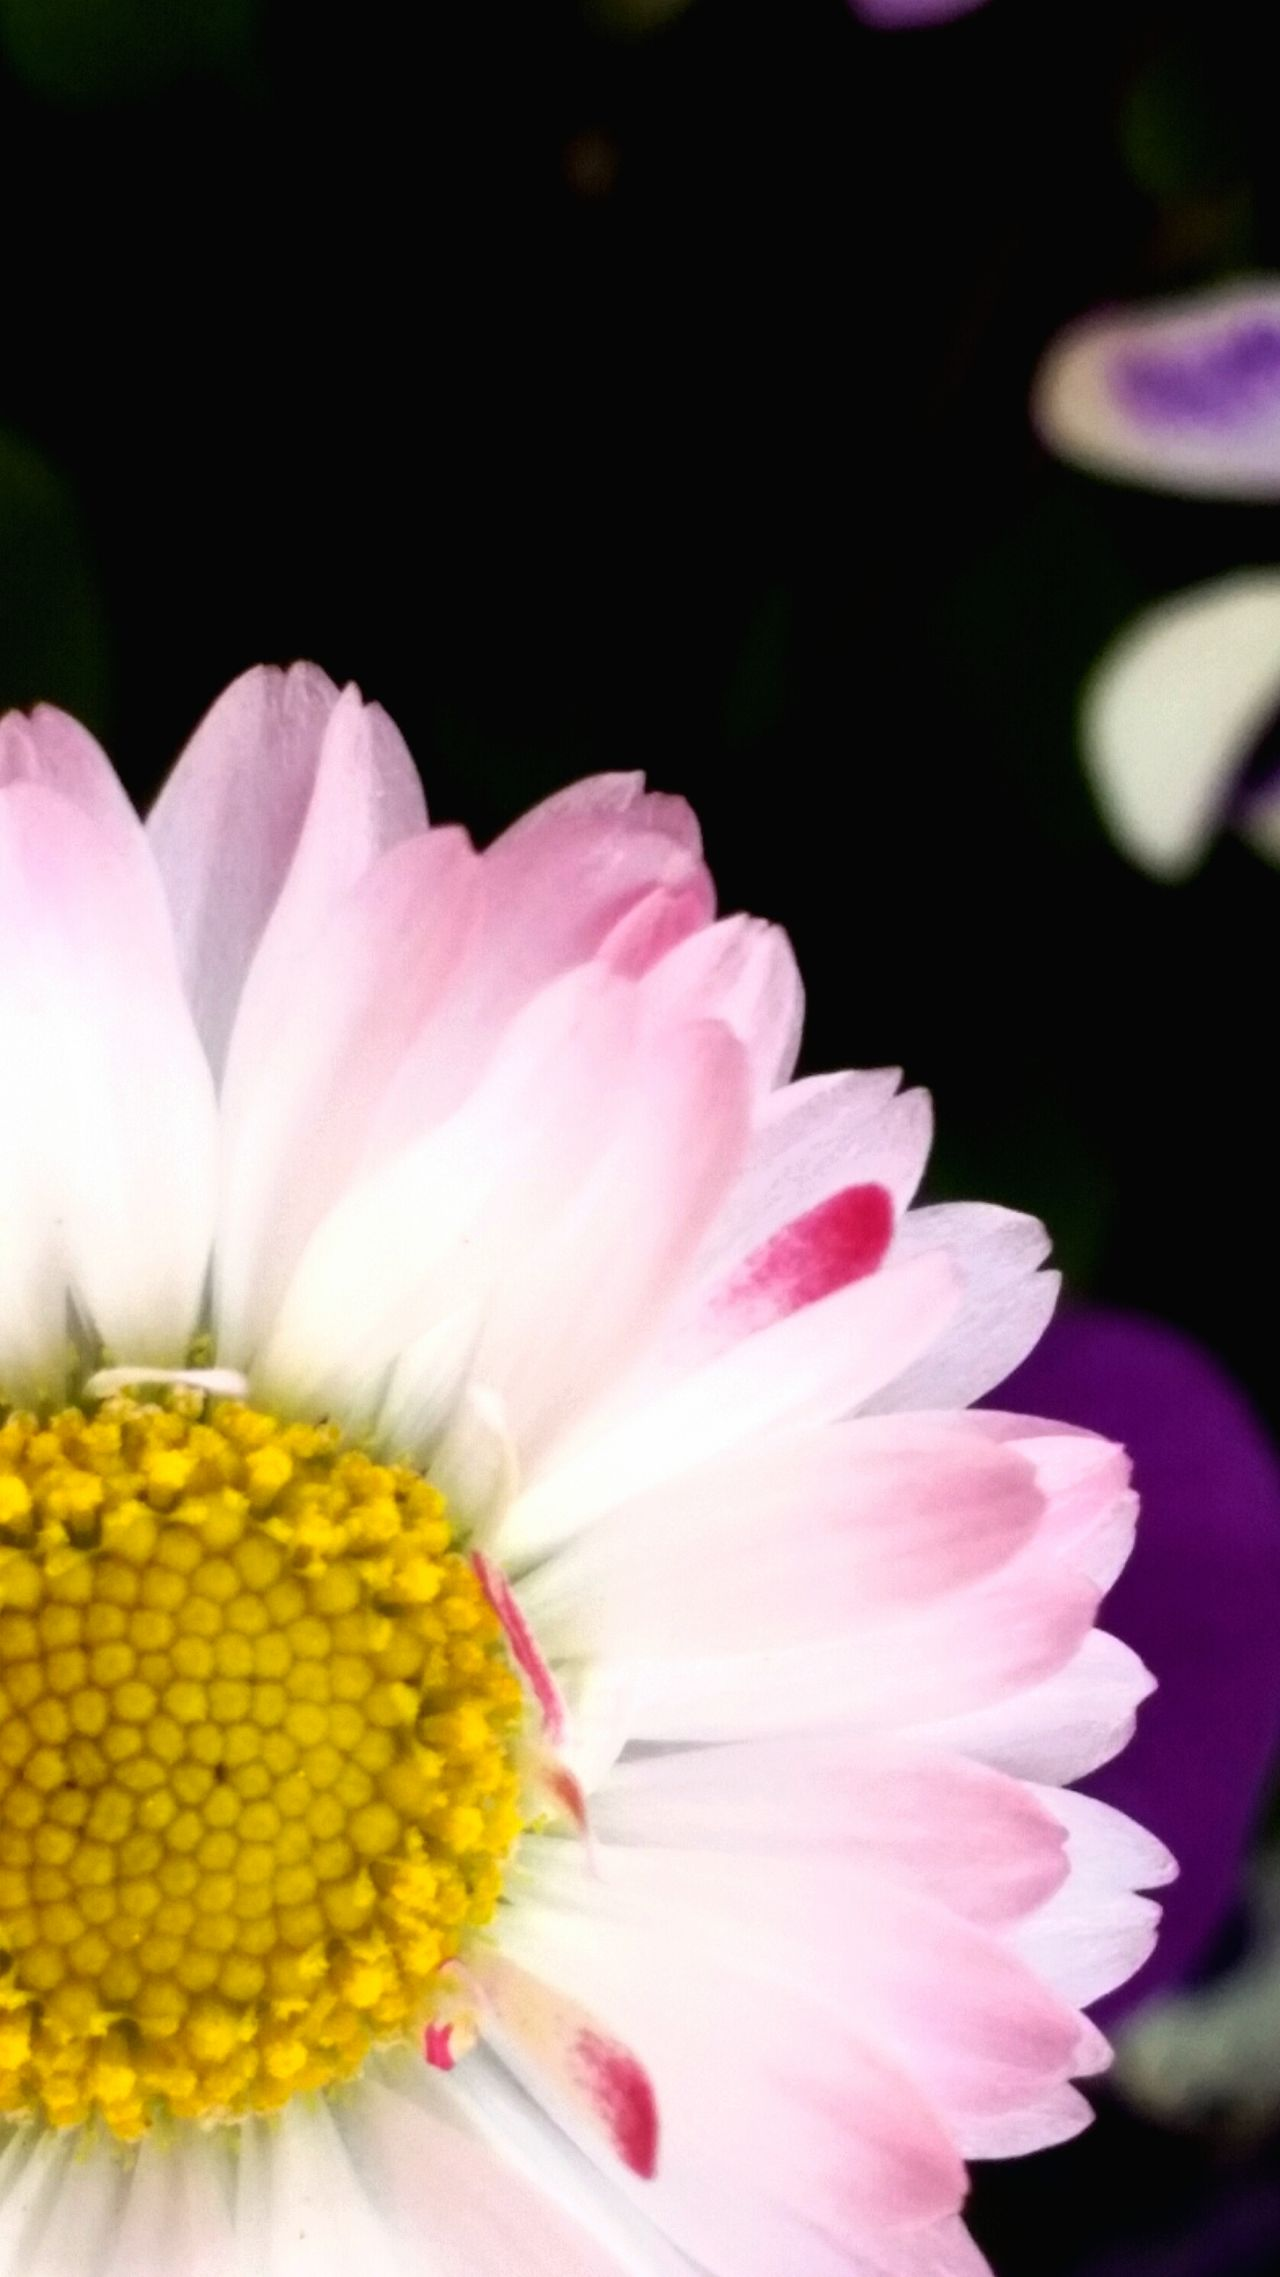 Flower Pink Color Petal Close-up Flower Head Beauty In Nature Nature Freshness Fragility No People Pollen Day Outdoors Daisy Close Up Daisy